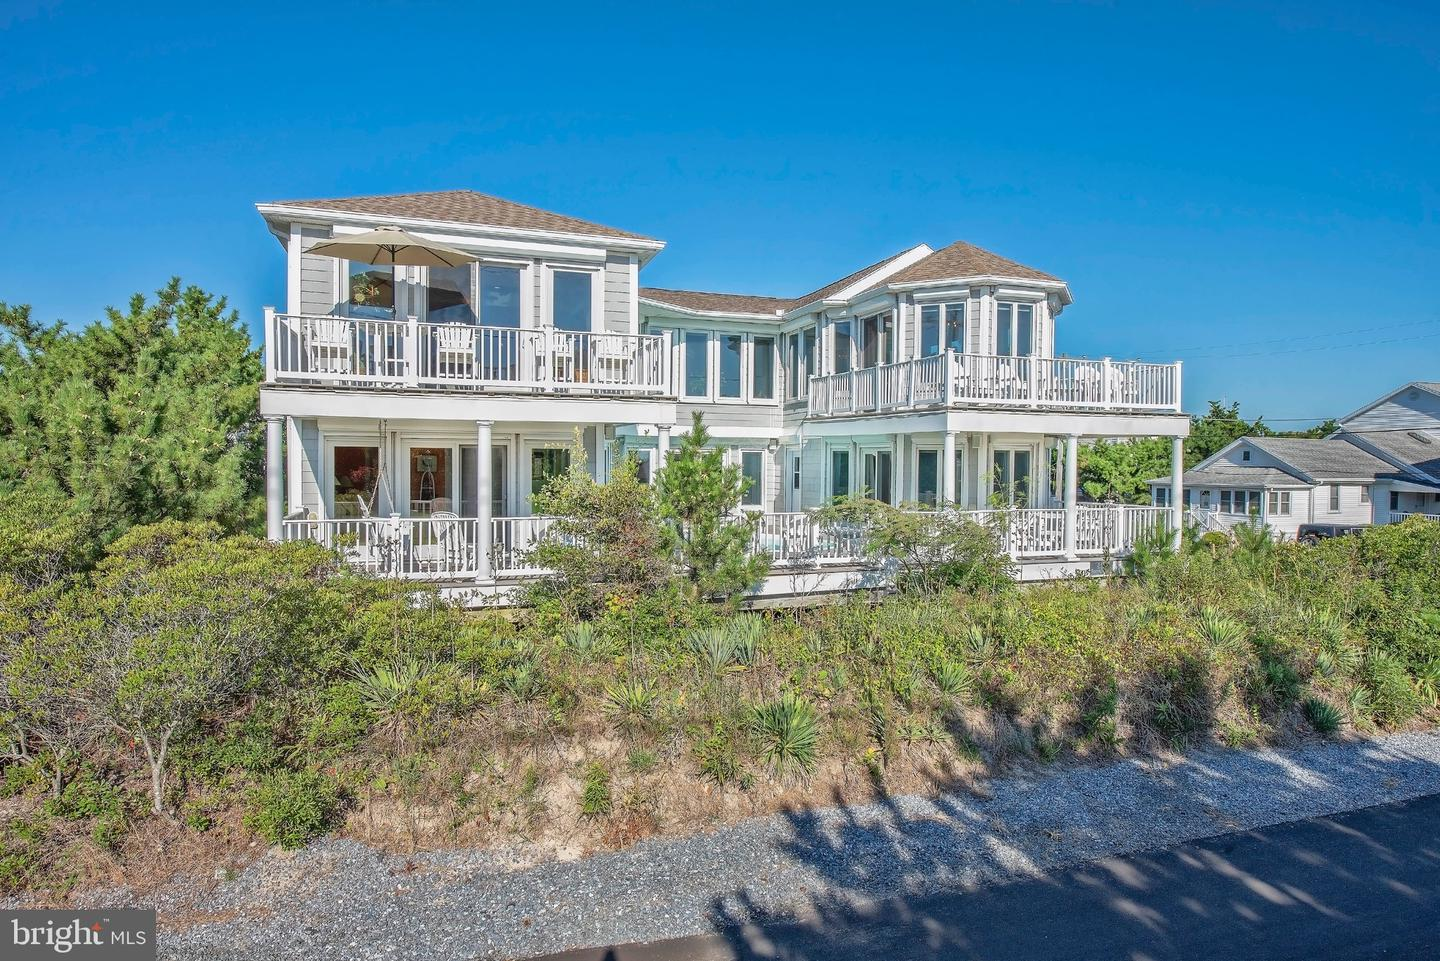 DESU147280-302007867517-2019-08-31-13-42-10 810 Bunting Ave | Fenwick Island, DE Real Estate For Sale | MLS# Desu147280  - Jack Lingo REALTOR